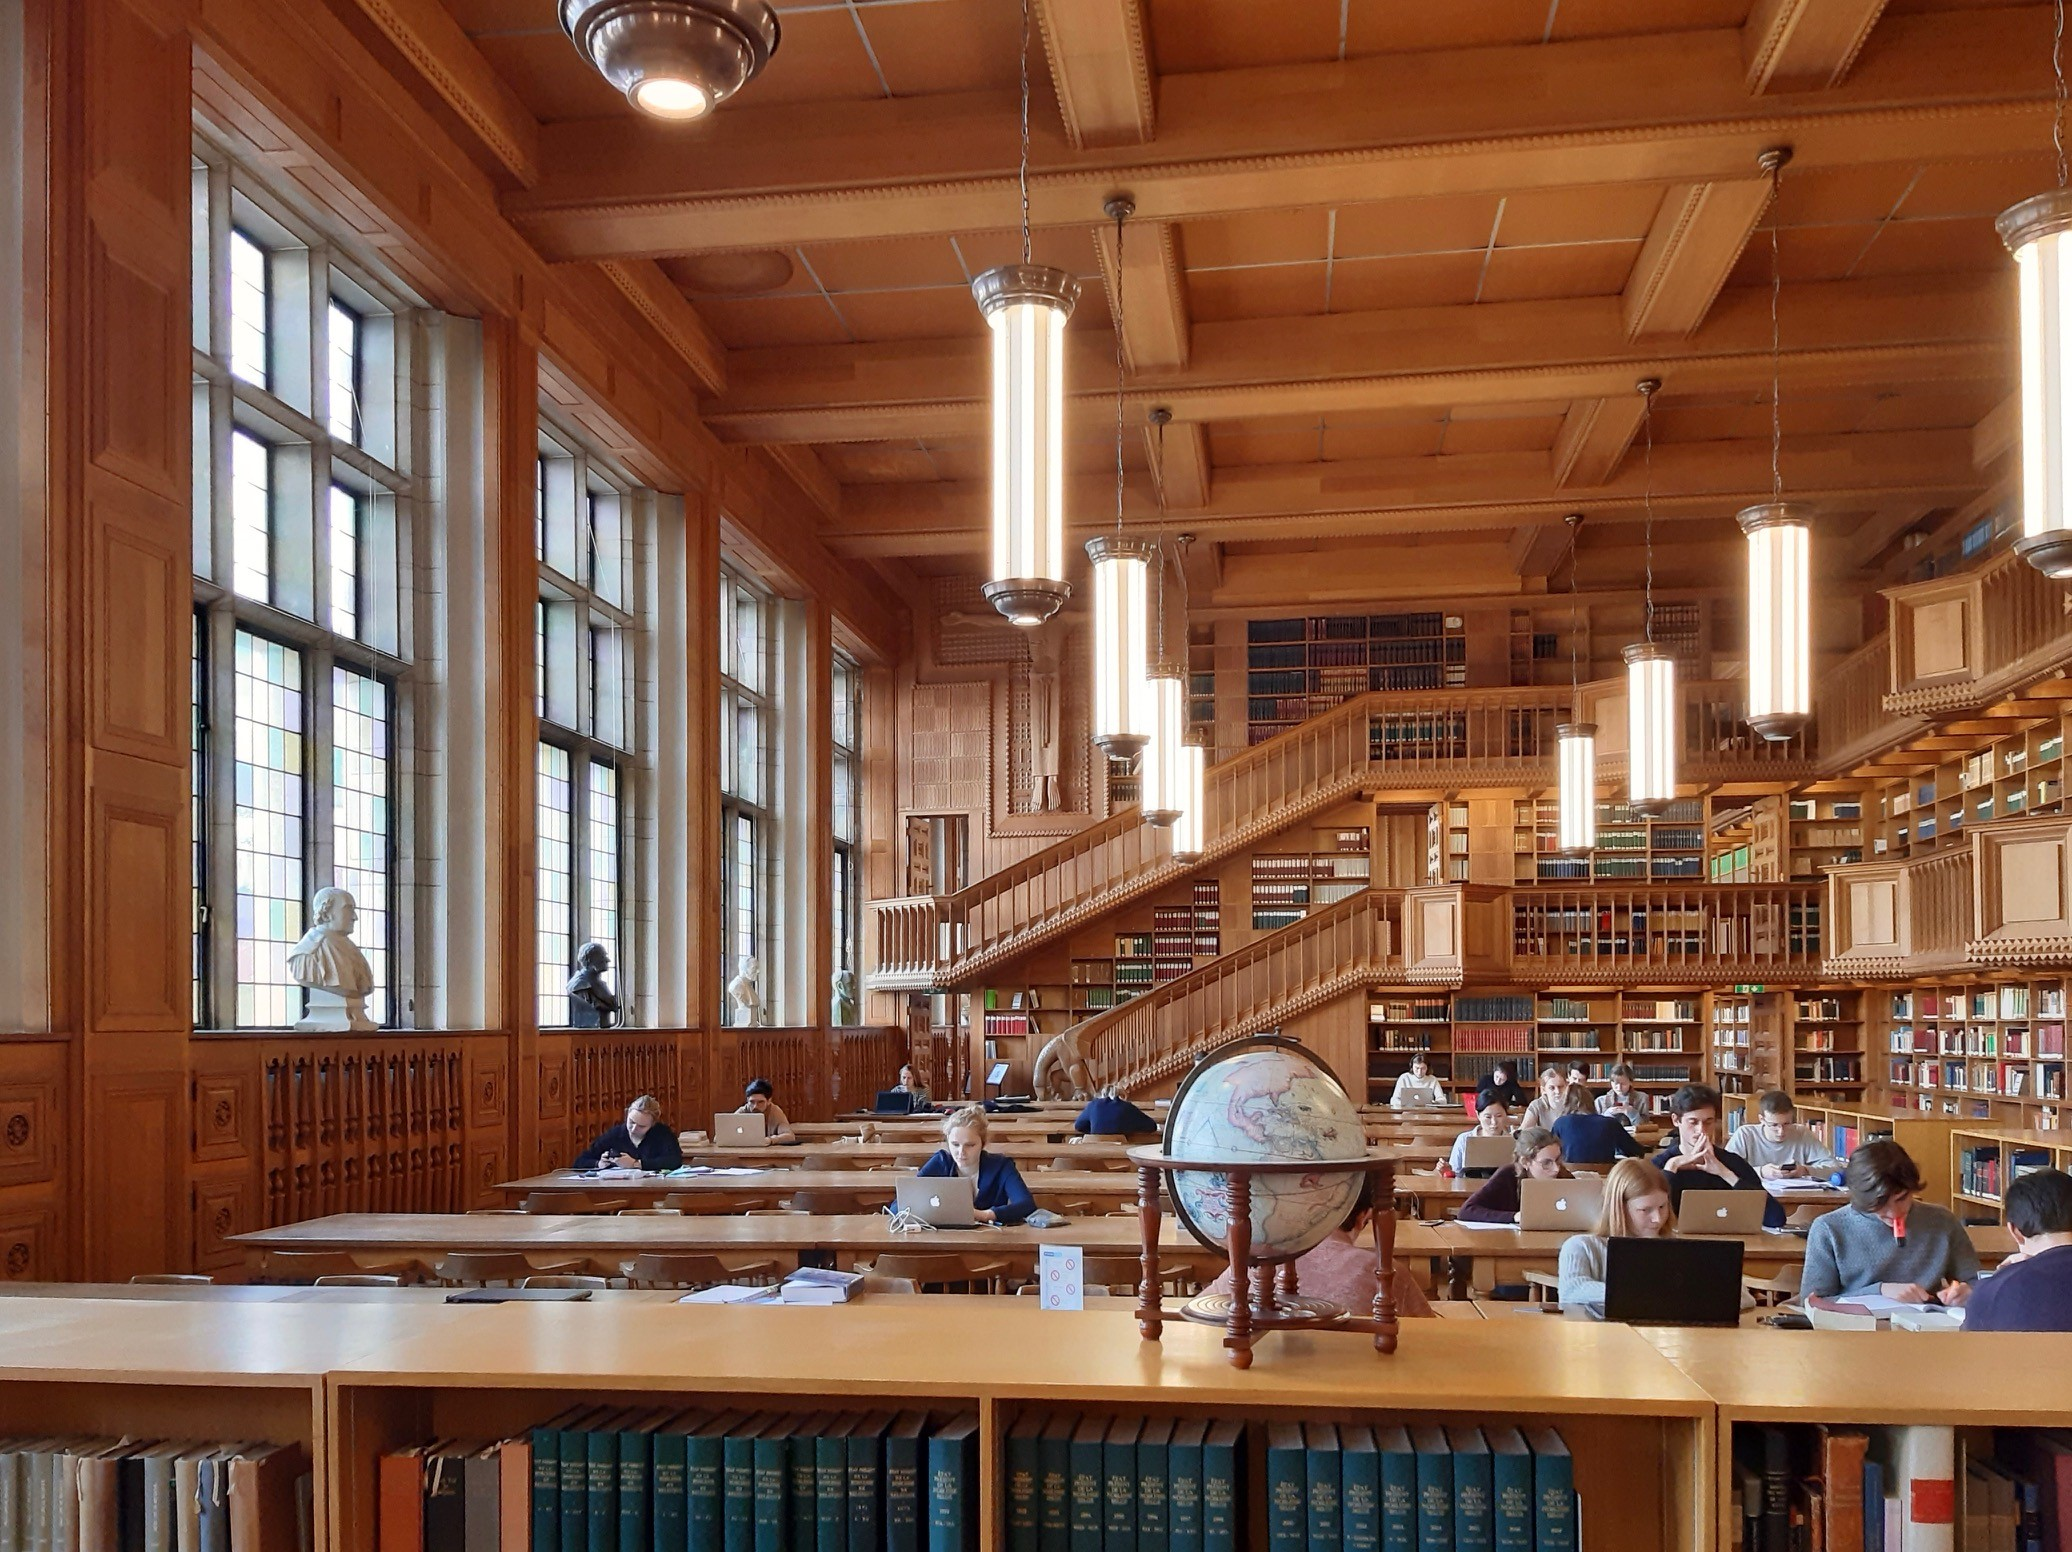 A Week in Leuven's Libraries